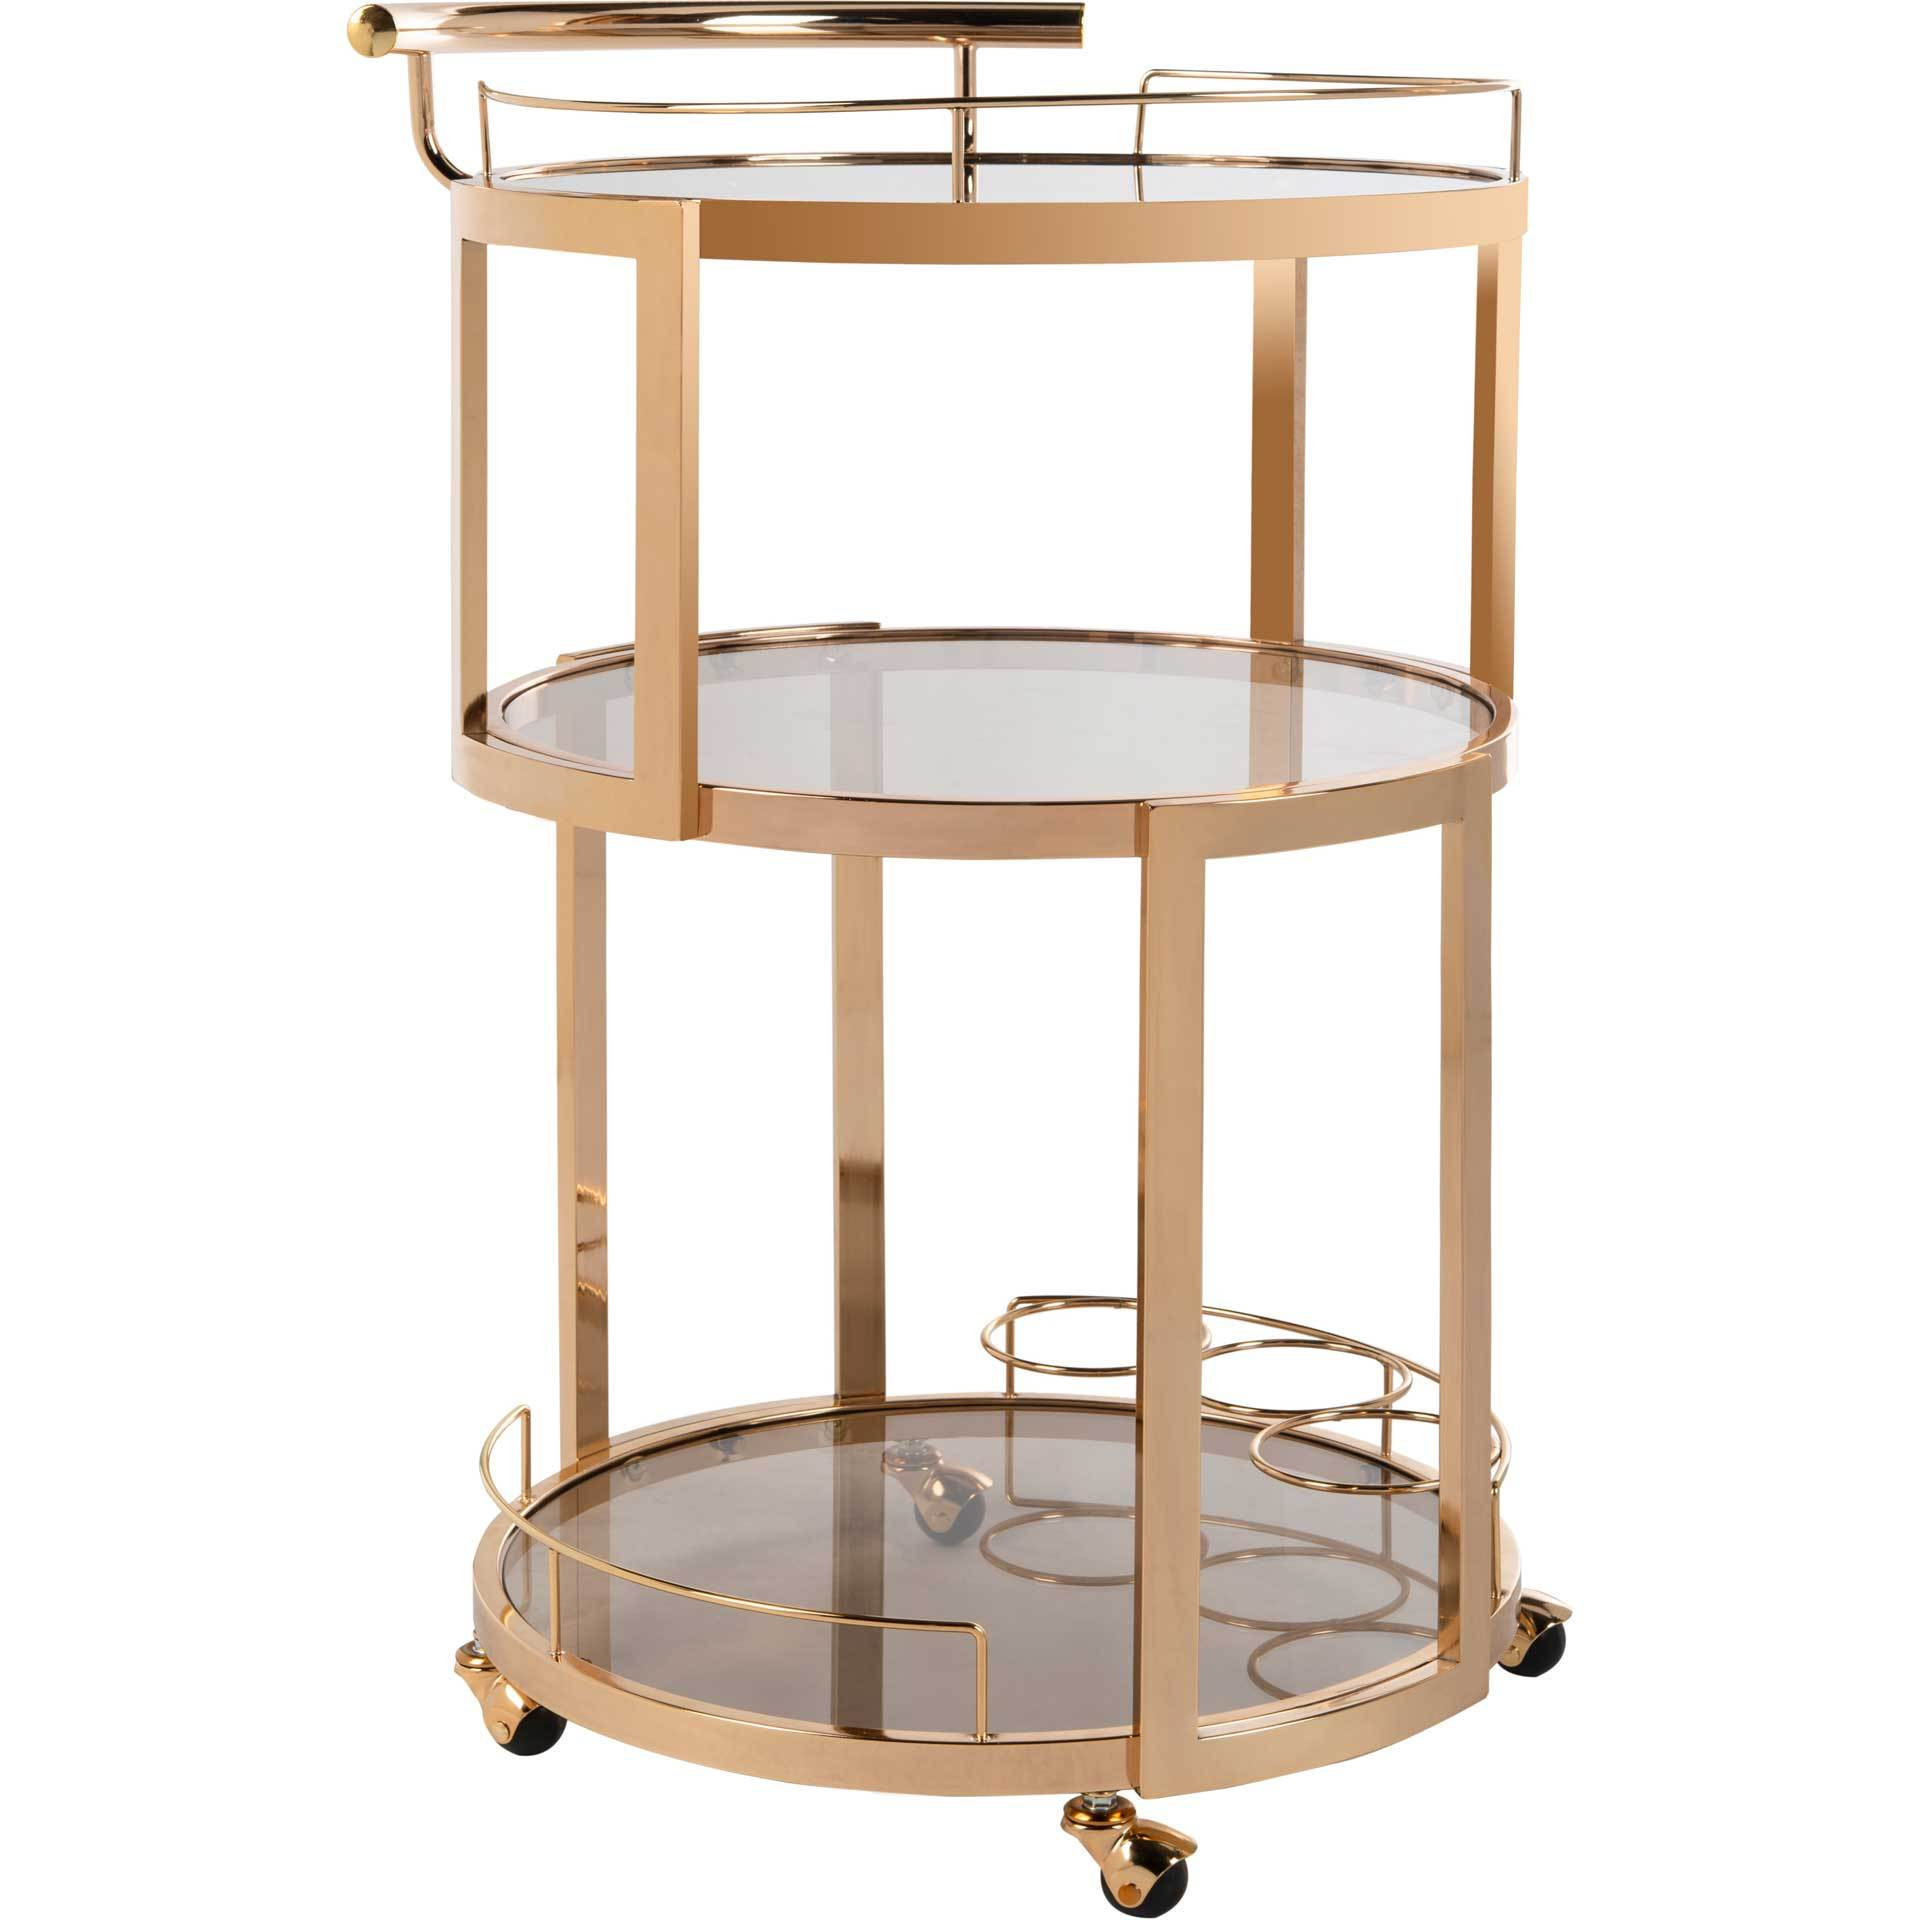 Ricky 3 Tier Round Bar Cart and Wine Rack Gold/Tinted Glass